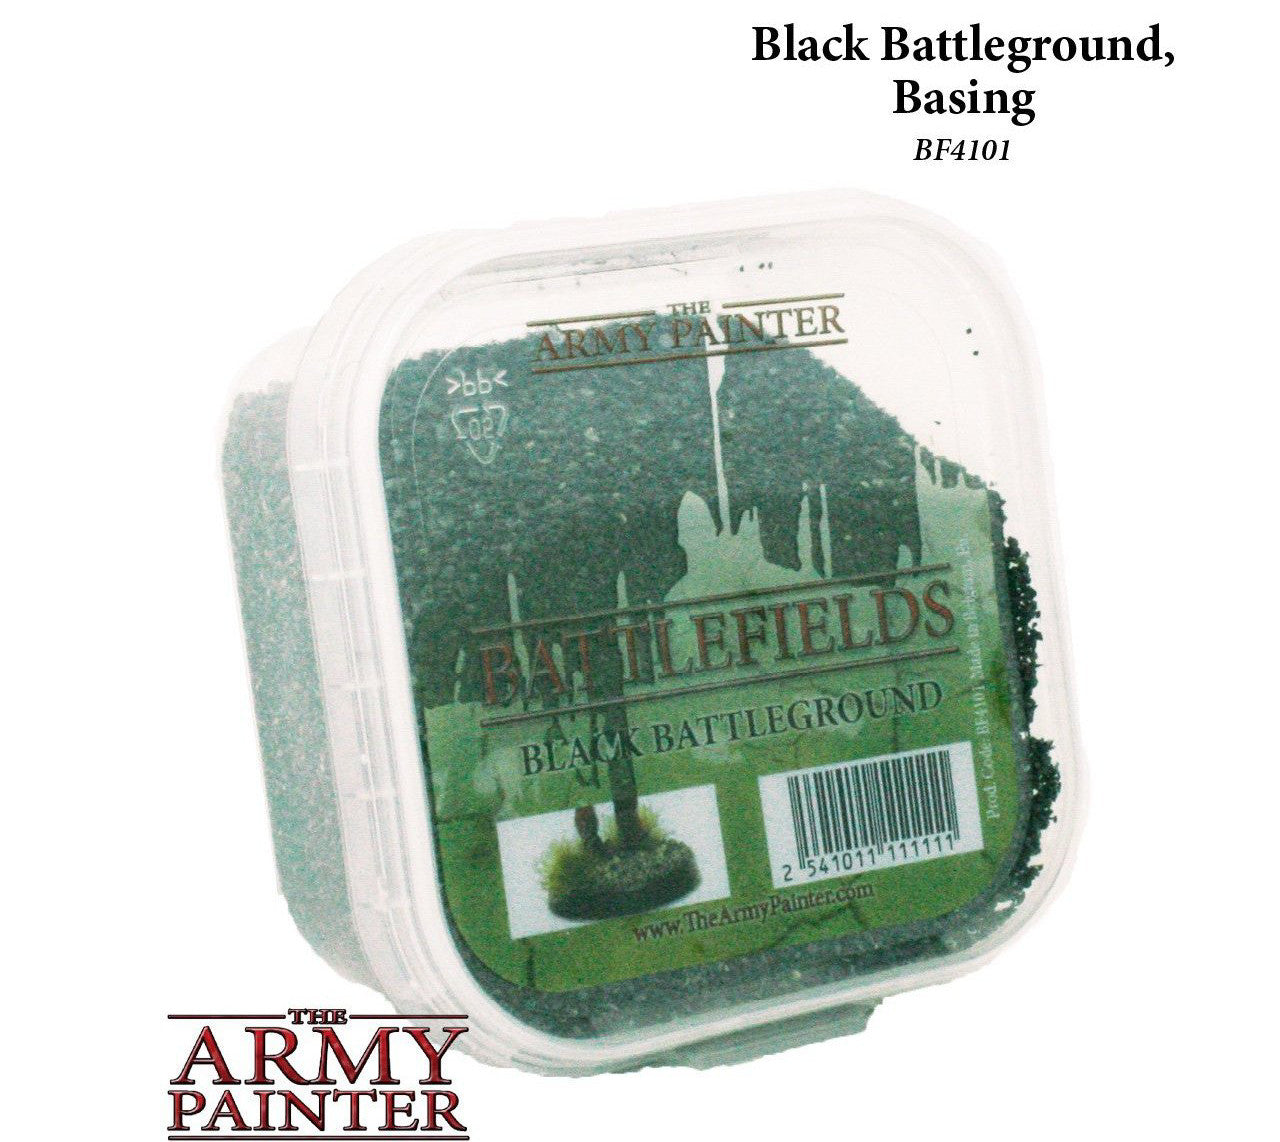 THE ARMY PAINTER BF4101 Black Battleground - Basing